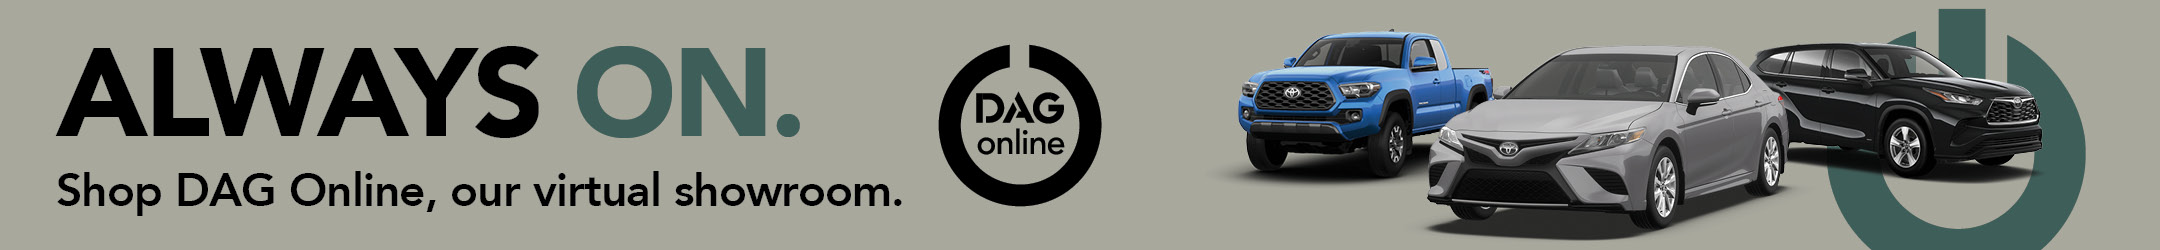 Shop DAG Online Virtual Showroom